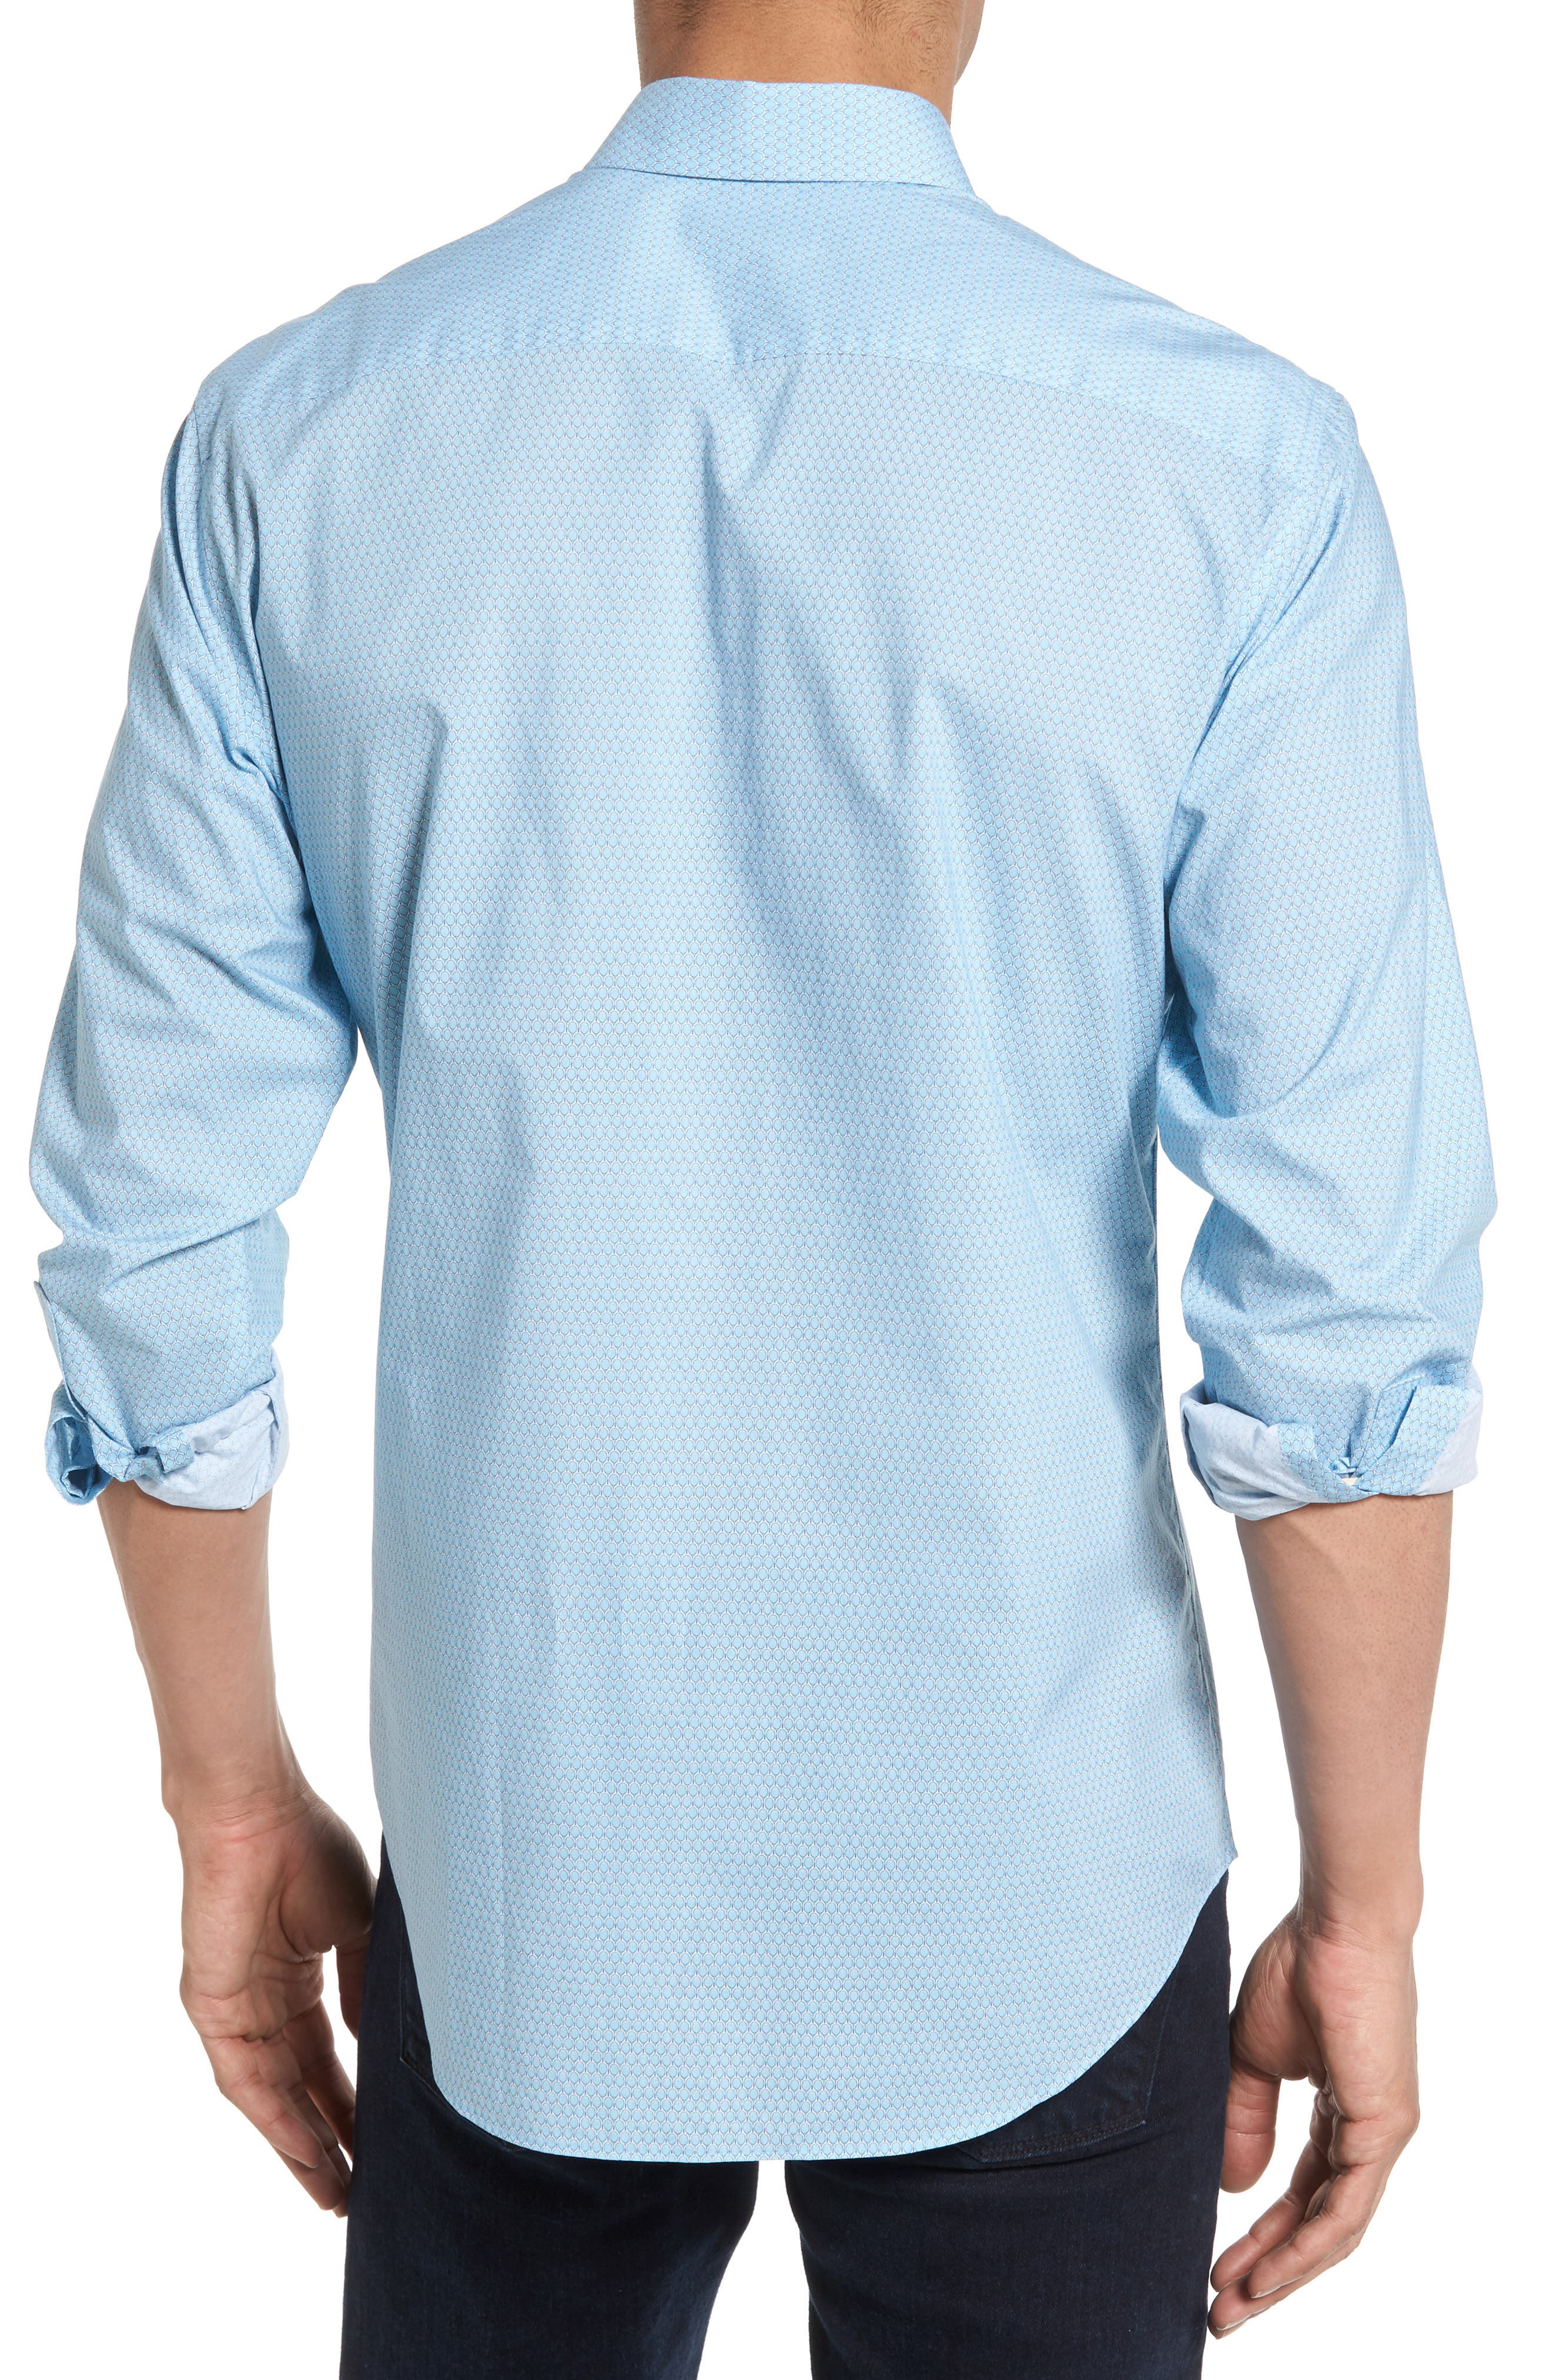 Alternate Image 2  - Zachary Prell Dakotah Trim Fit Print Sport Shirt